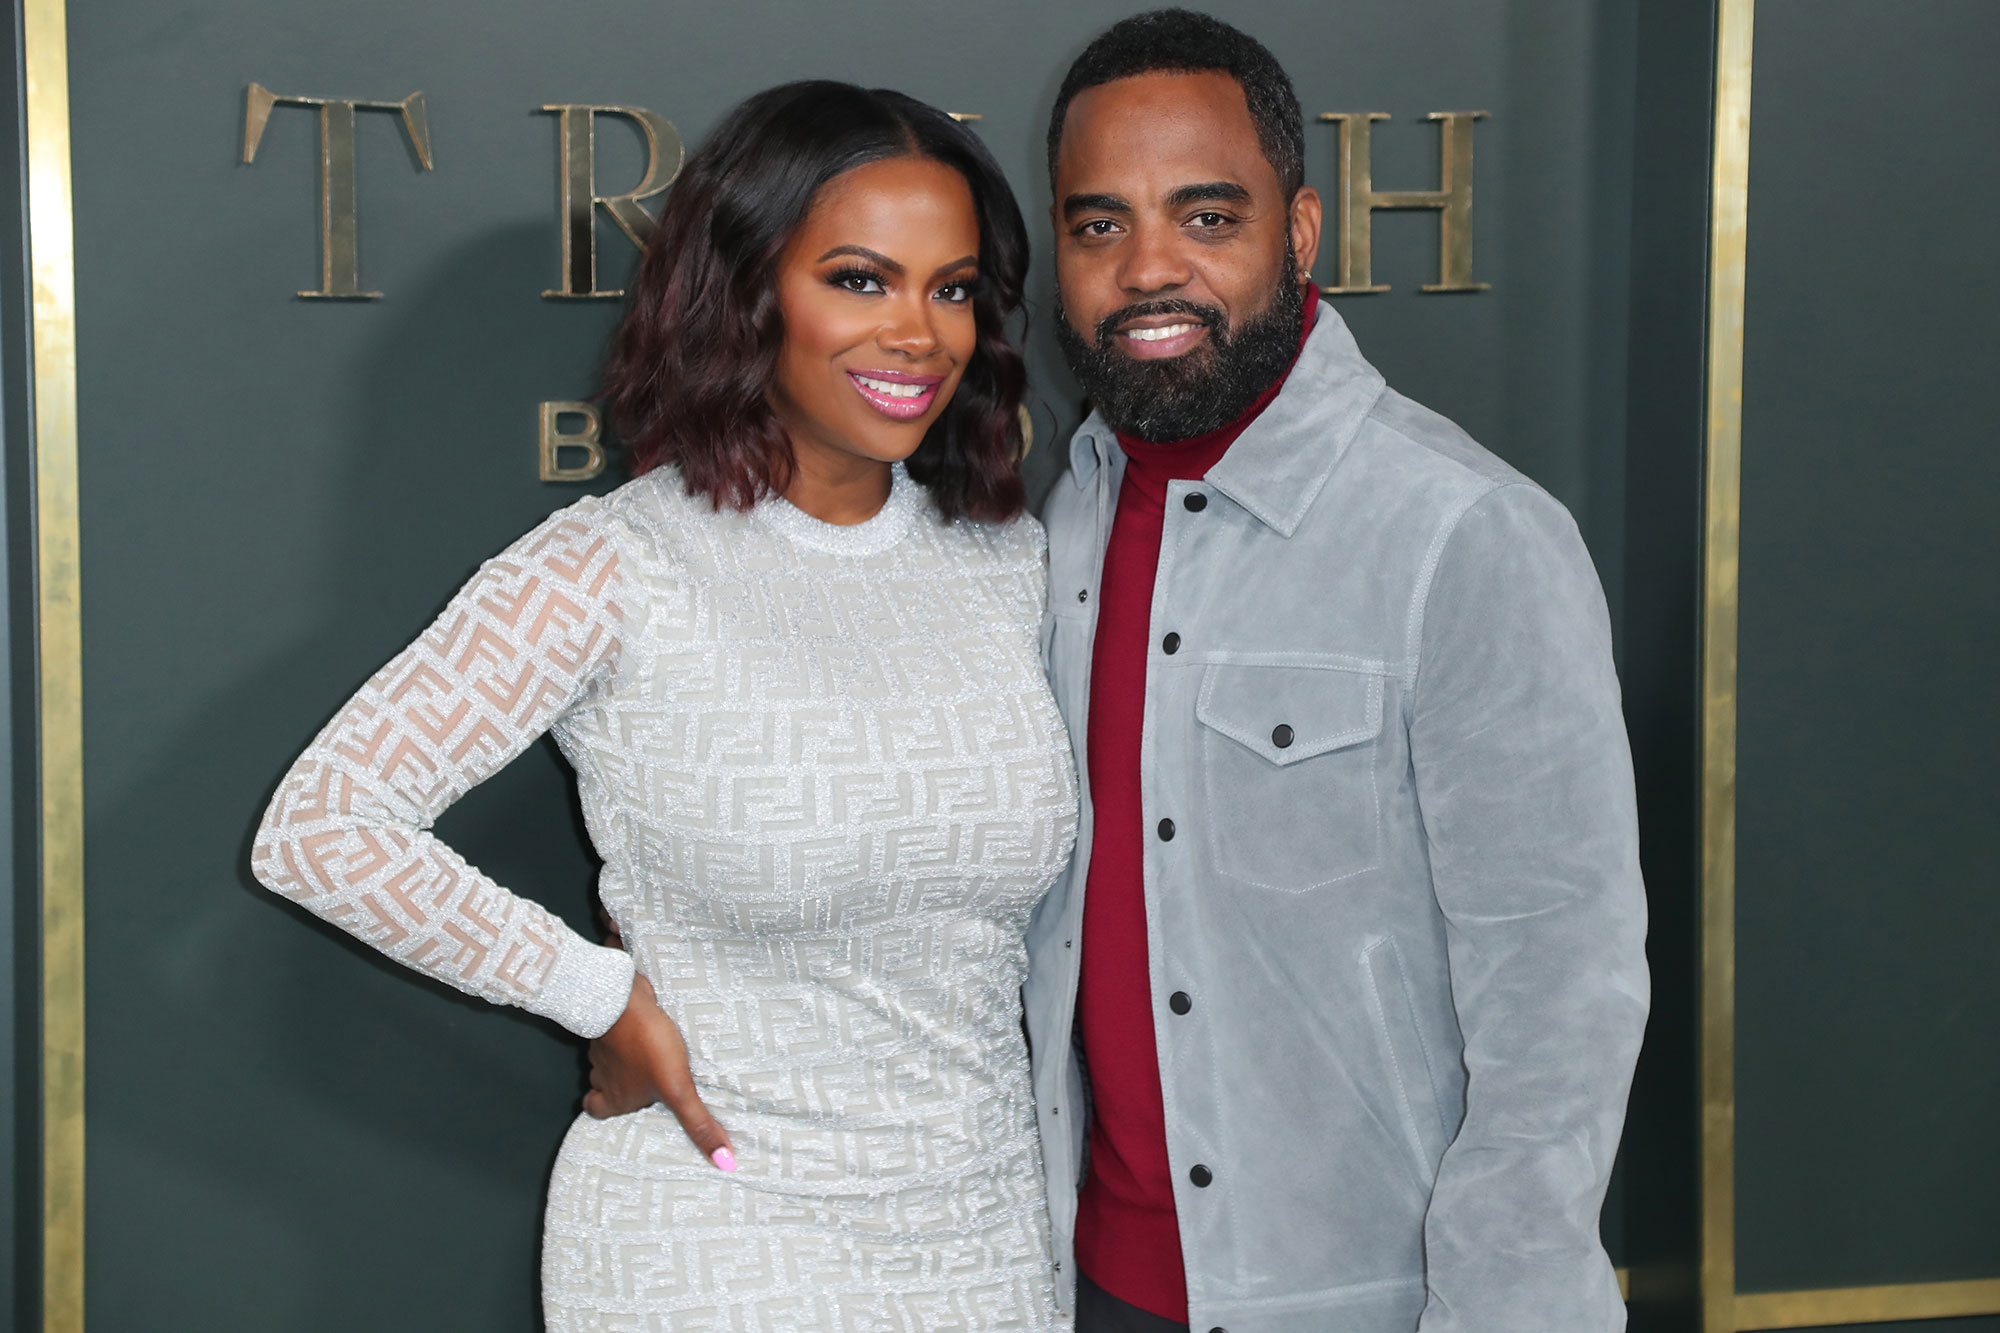 Kandi Burruss And Todd Tucker's Fight For Racial Equality In America Begins With Open Dialogue - See The Video